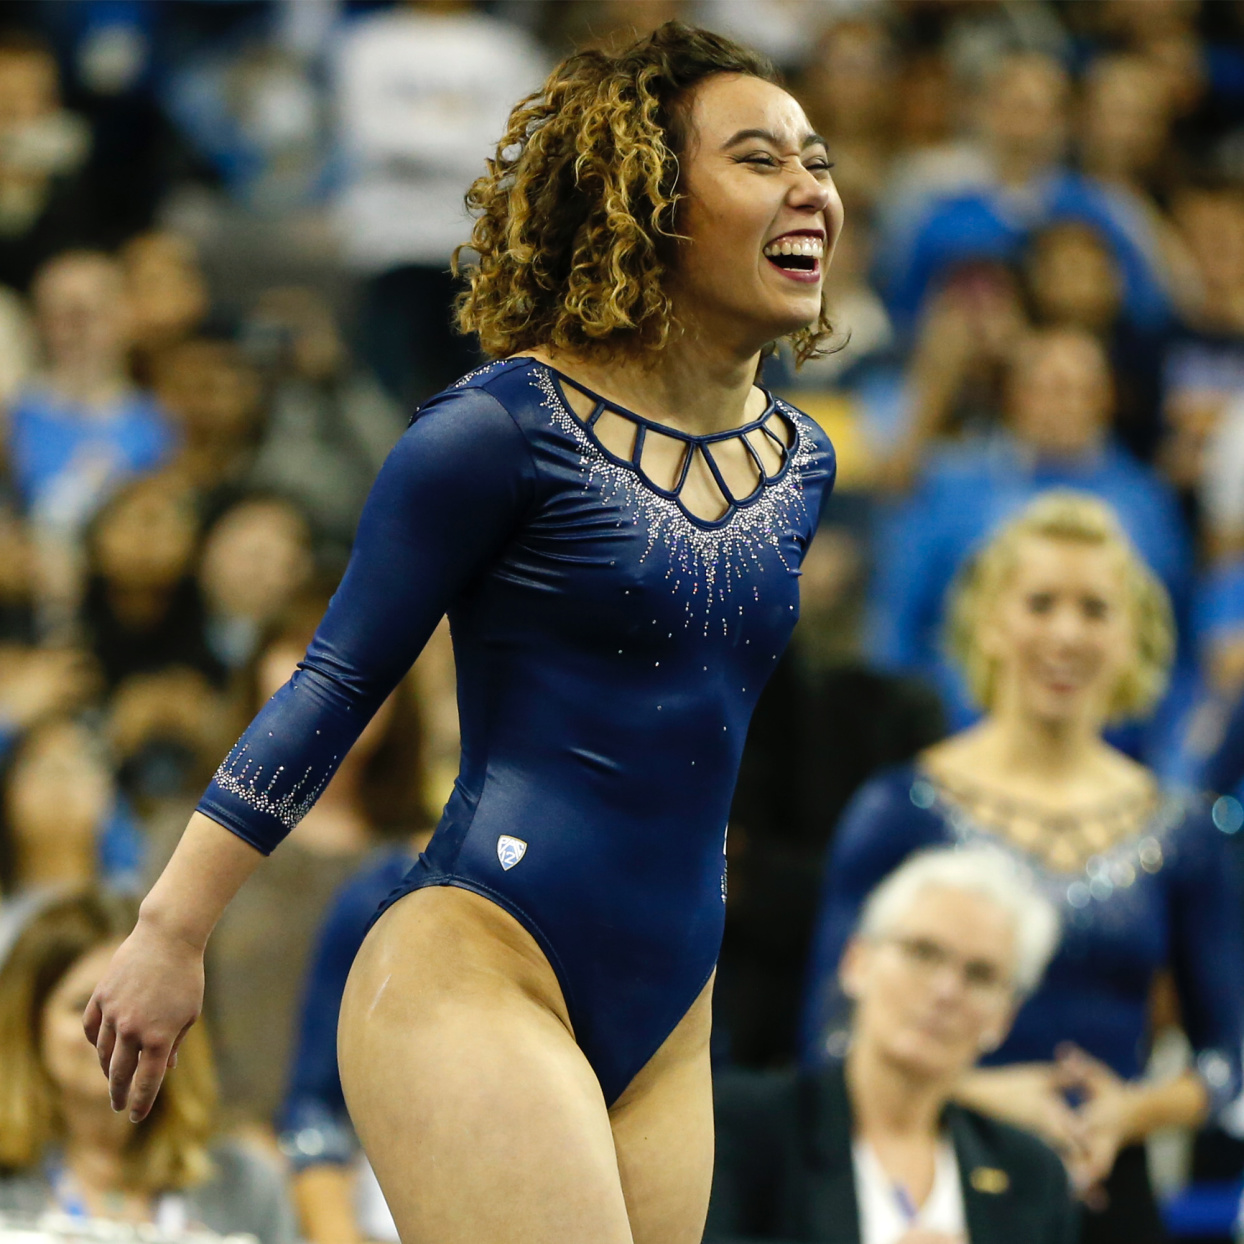 Gymnast Katelyn Ohashi Opens Up About Her Rare Skin Condition and Body-Shaming